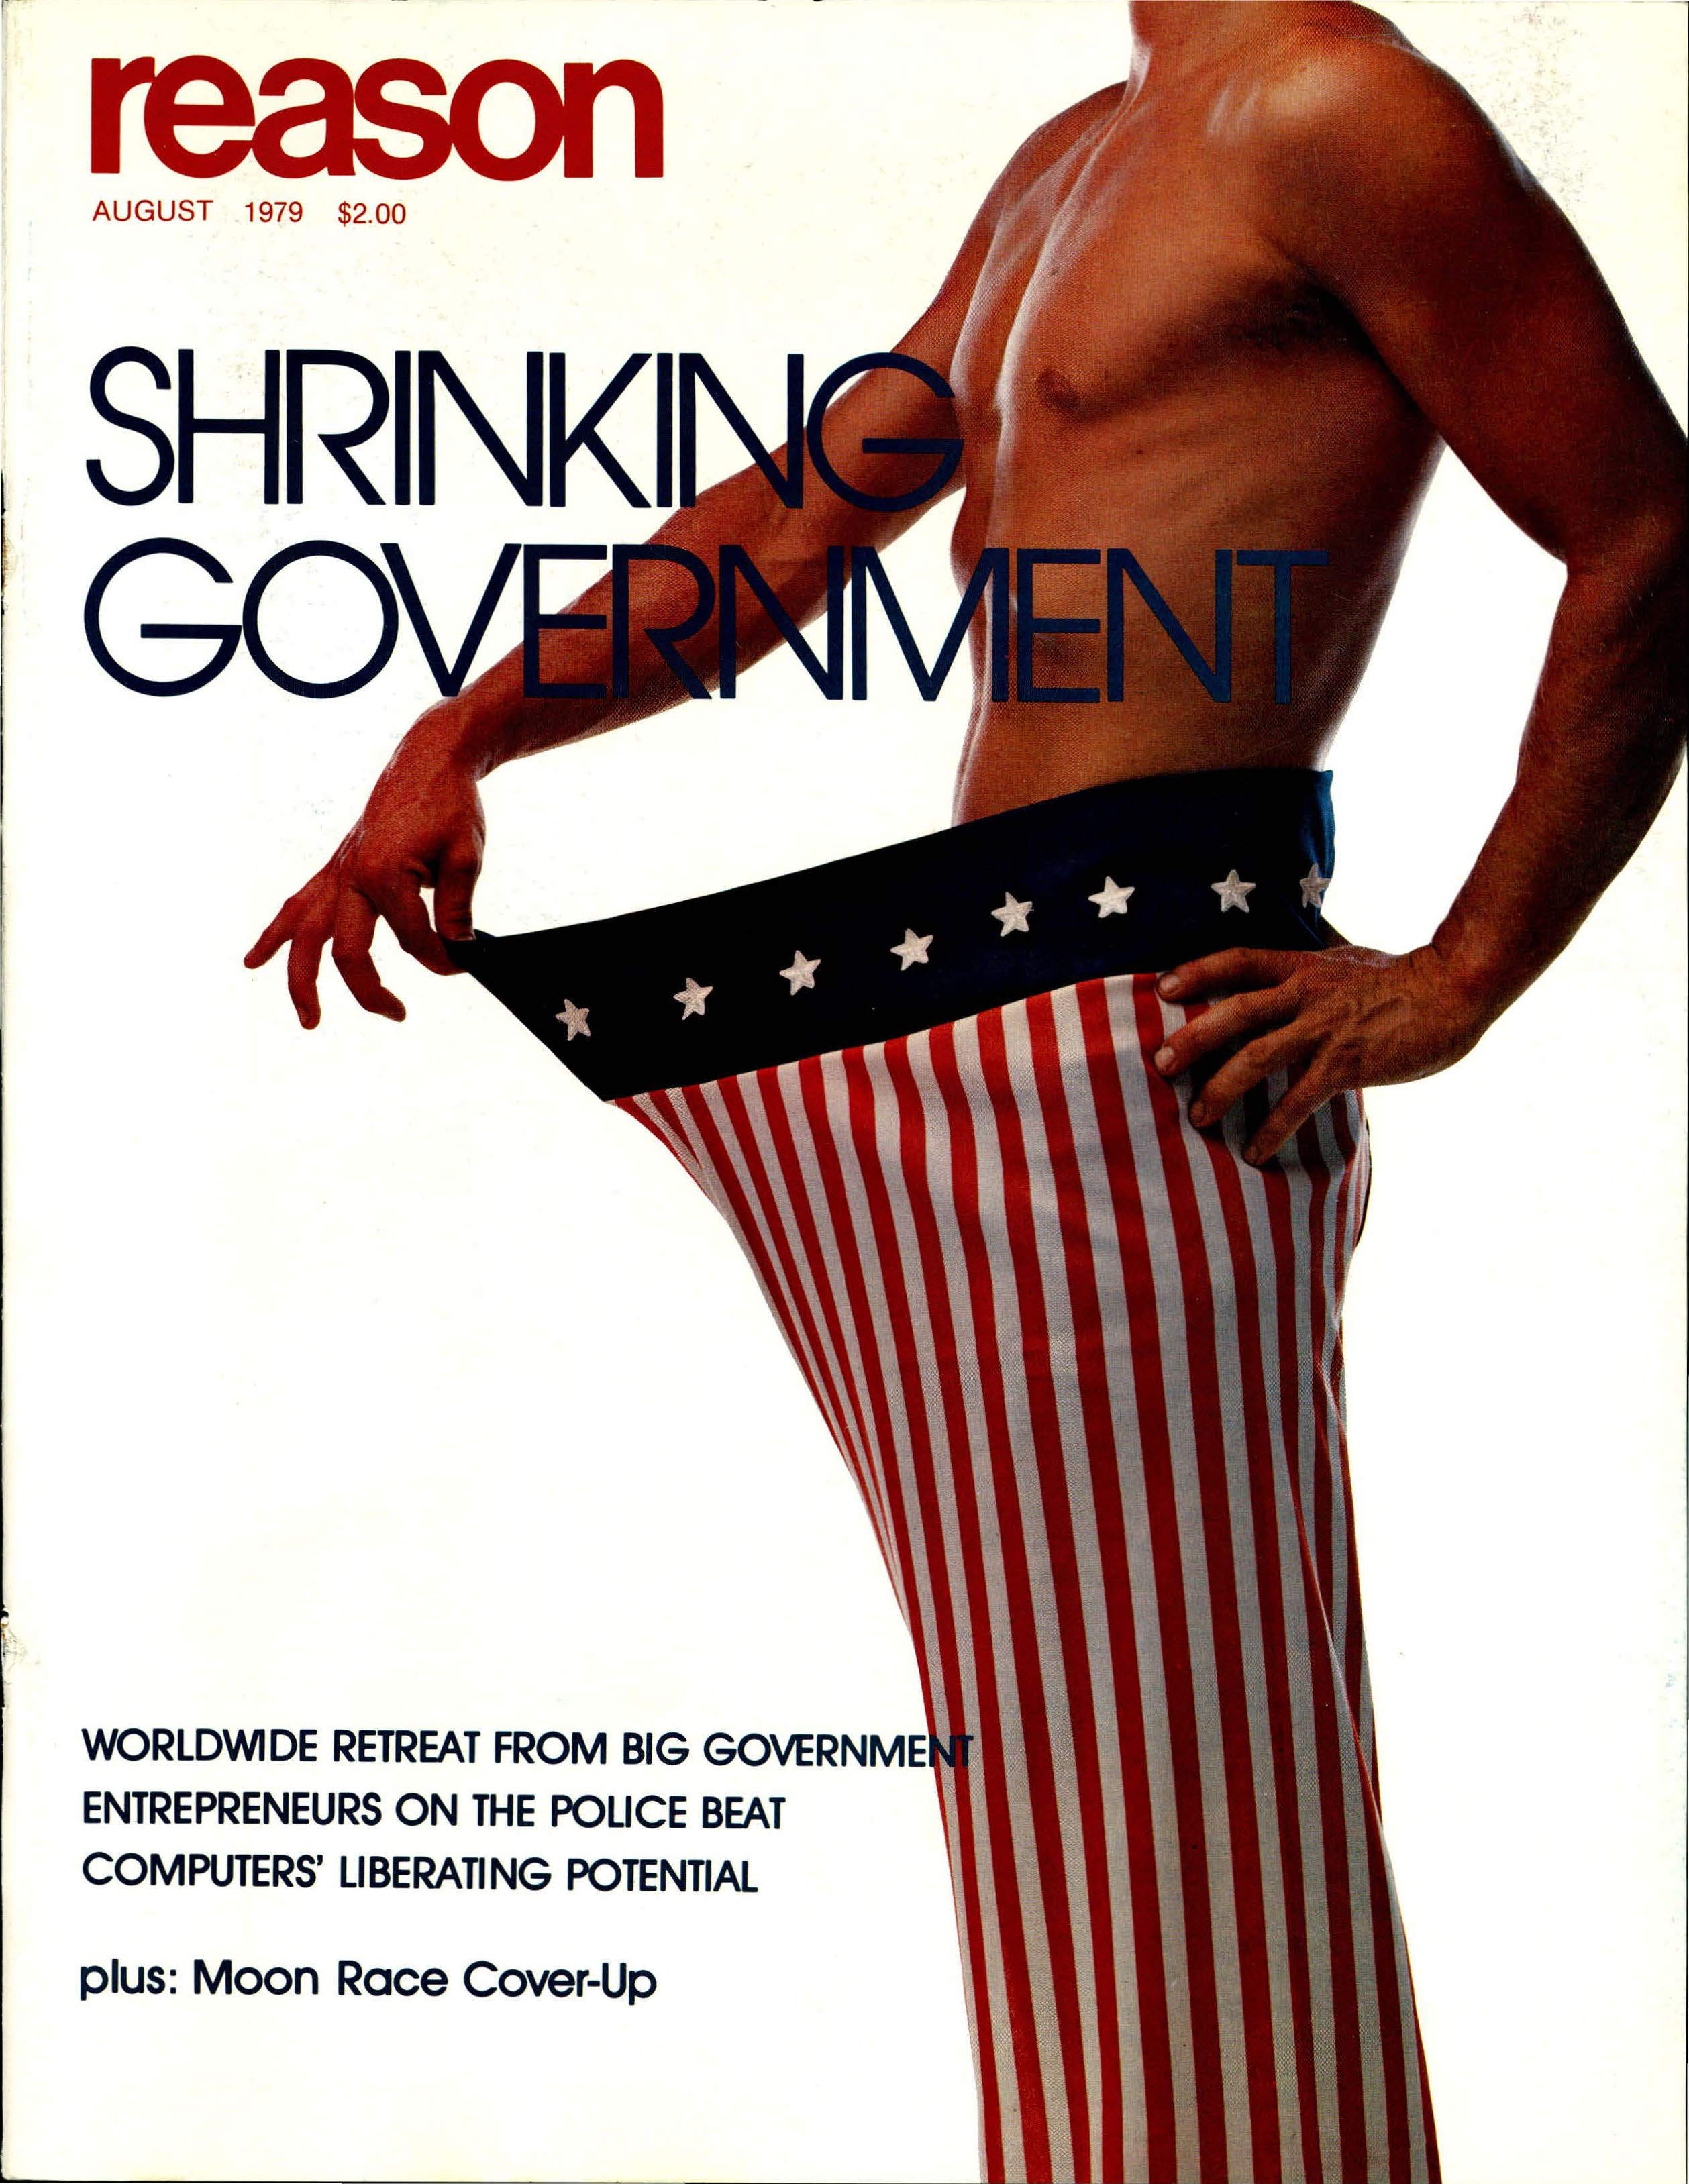 Reason Magazine, August 1979 cover image